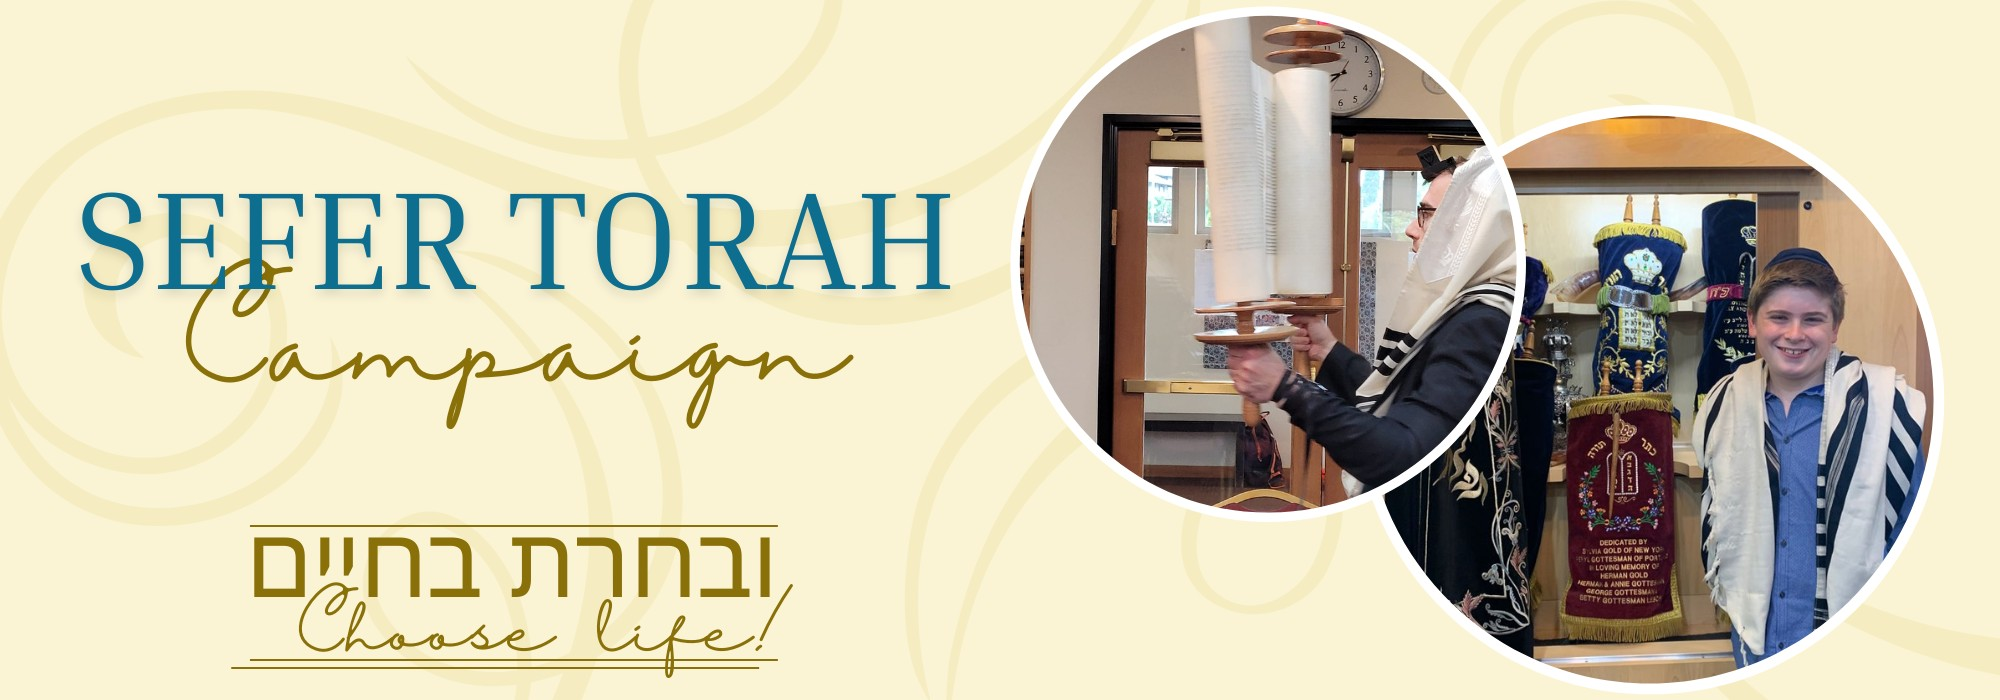 """<a href=""""sefertorahpdx.com""""                                     target="""""""">                                                                 <span class=""""slider_title"""">                                     Sefer Torah Campaign                                </span>                                                                 </a>                                                                                                                                                                                       <span class=""""slider_description"""">See our many dedication opportunities to be a part of our campaign!</span>                                                                                     <a href=""""sefertorahpdx.com"""" class=""""slider_link""""                             target="""""""">                             Visit Site                            </a>"""